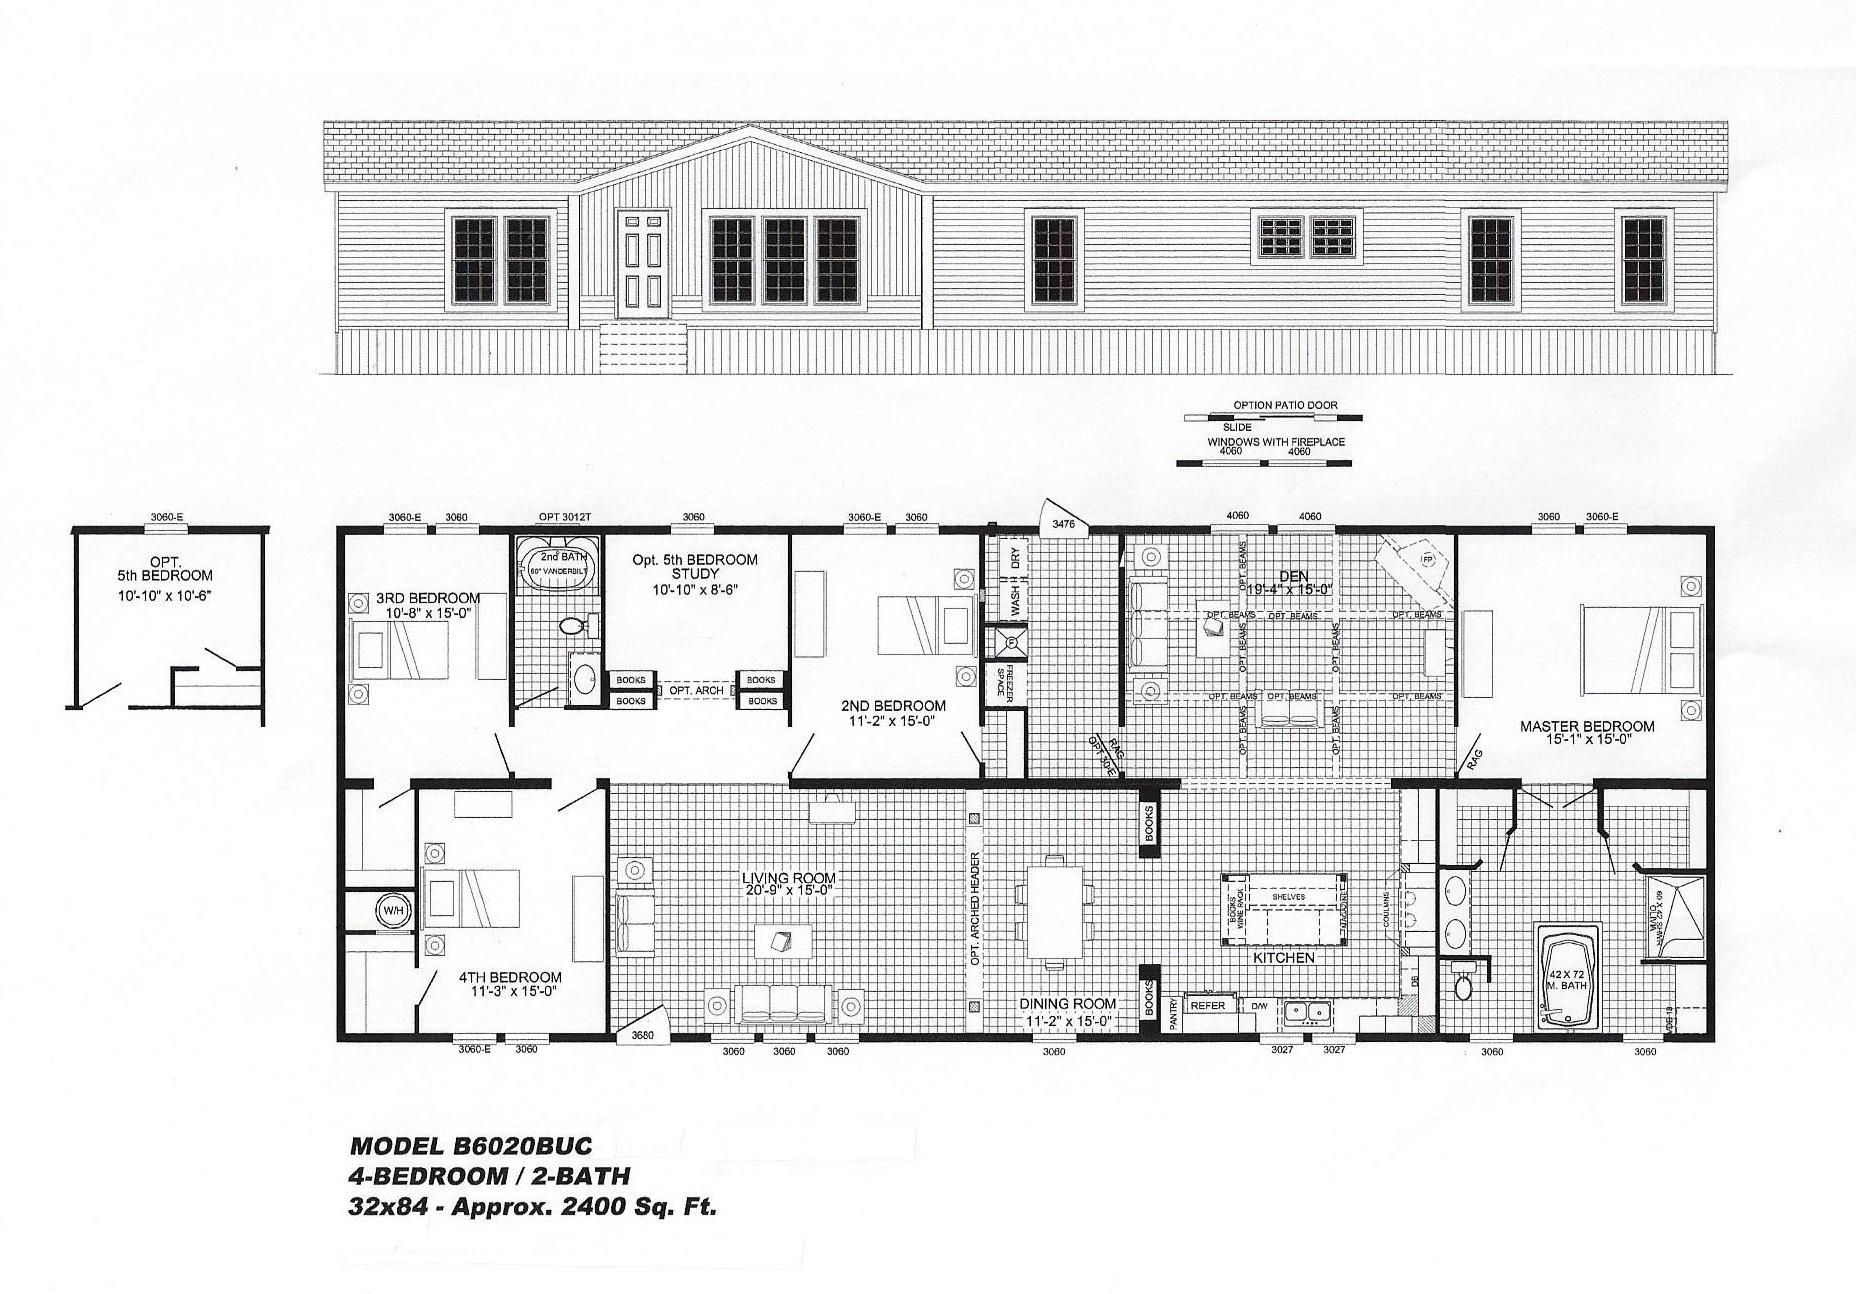 B-6020 - Hawks Homes | Manufactured & Modular | Conway & Little Rock on conway basketball, conway fl, conway tx, conway sc, conway department store clothing, conway arkansas apartments, conway arkansas weather, conway school district, conway wa, conway arizona, conway pd, conway county arkansas, conway football,